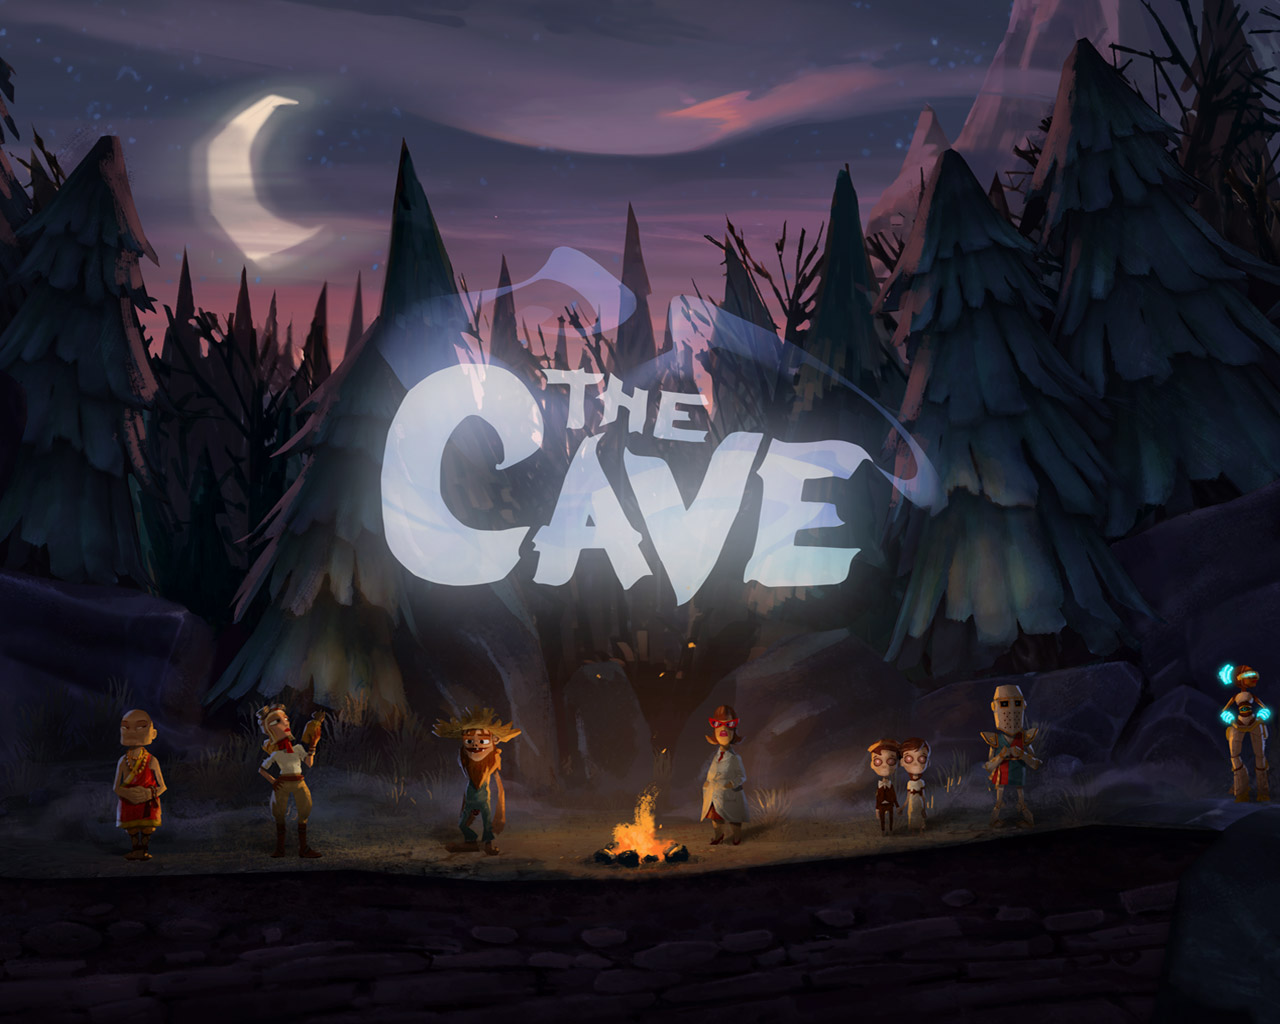 Free The Cave Wallpaper in 1280x1024